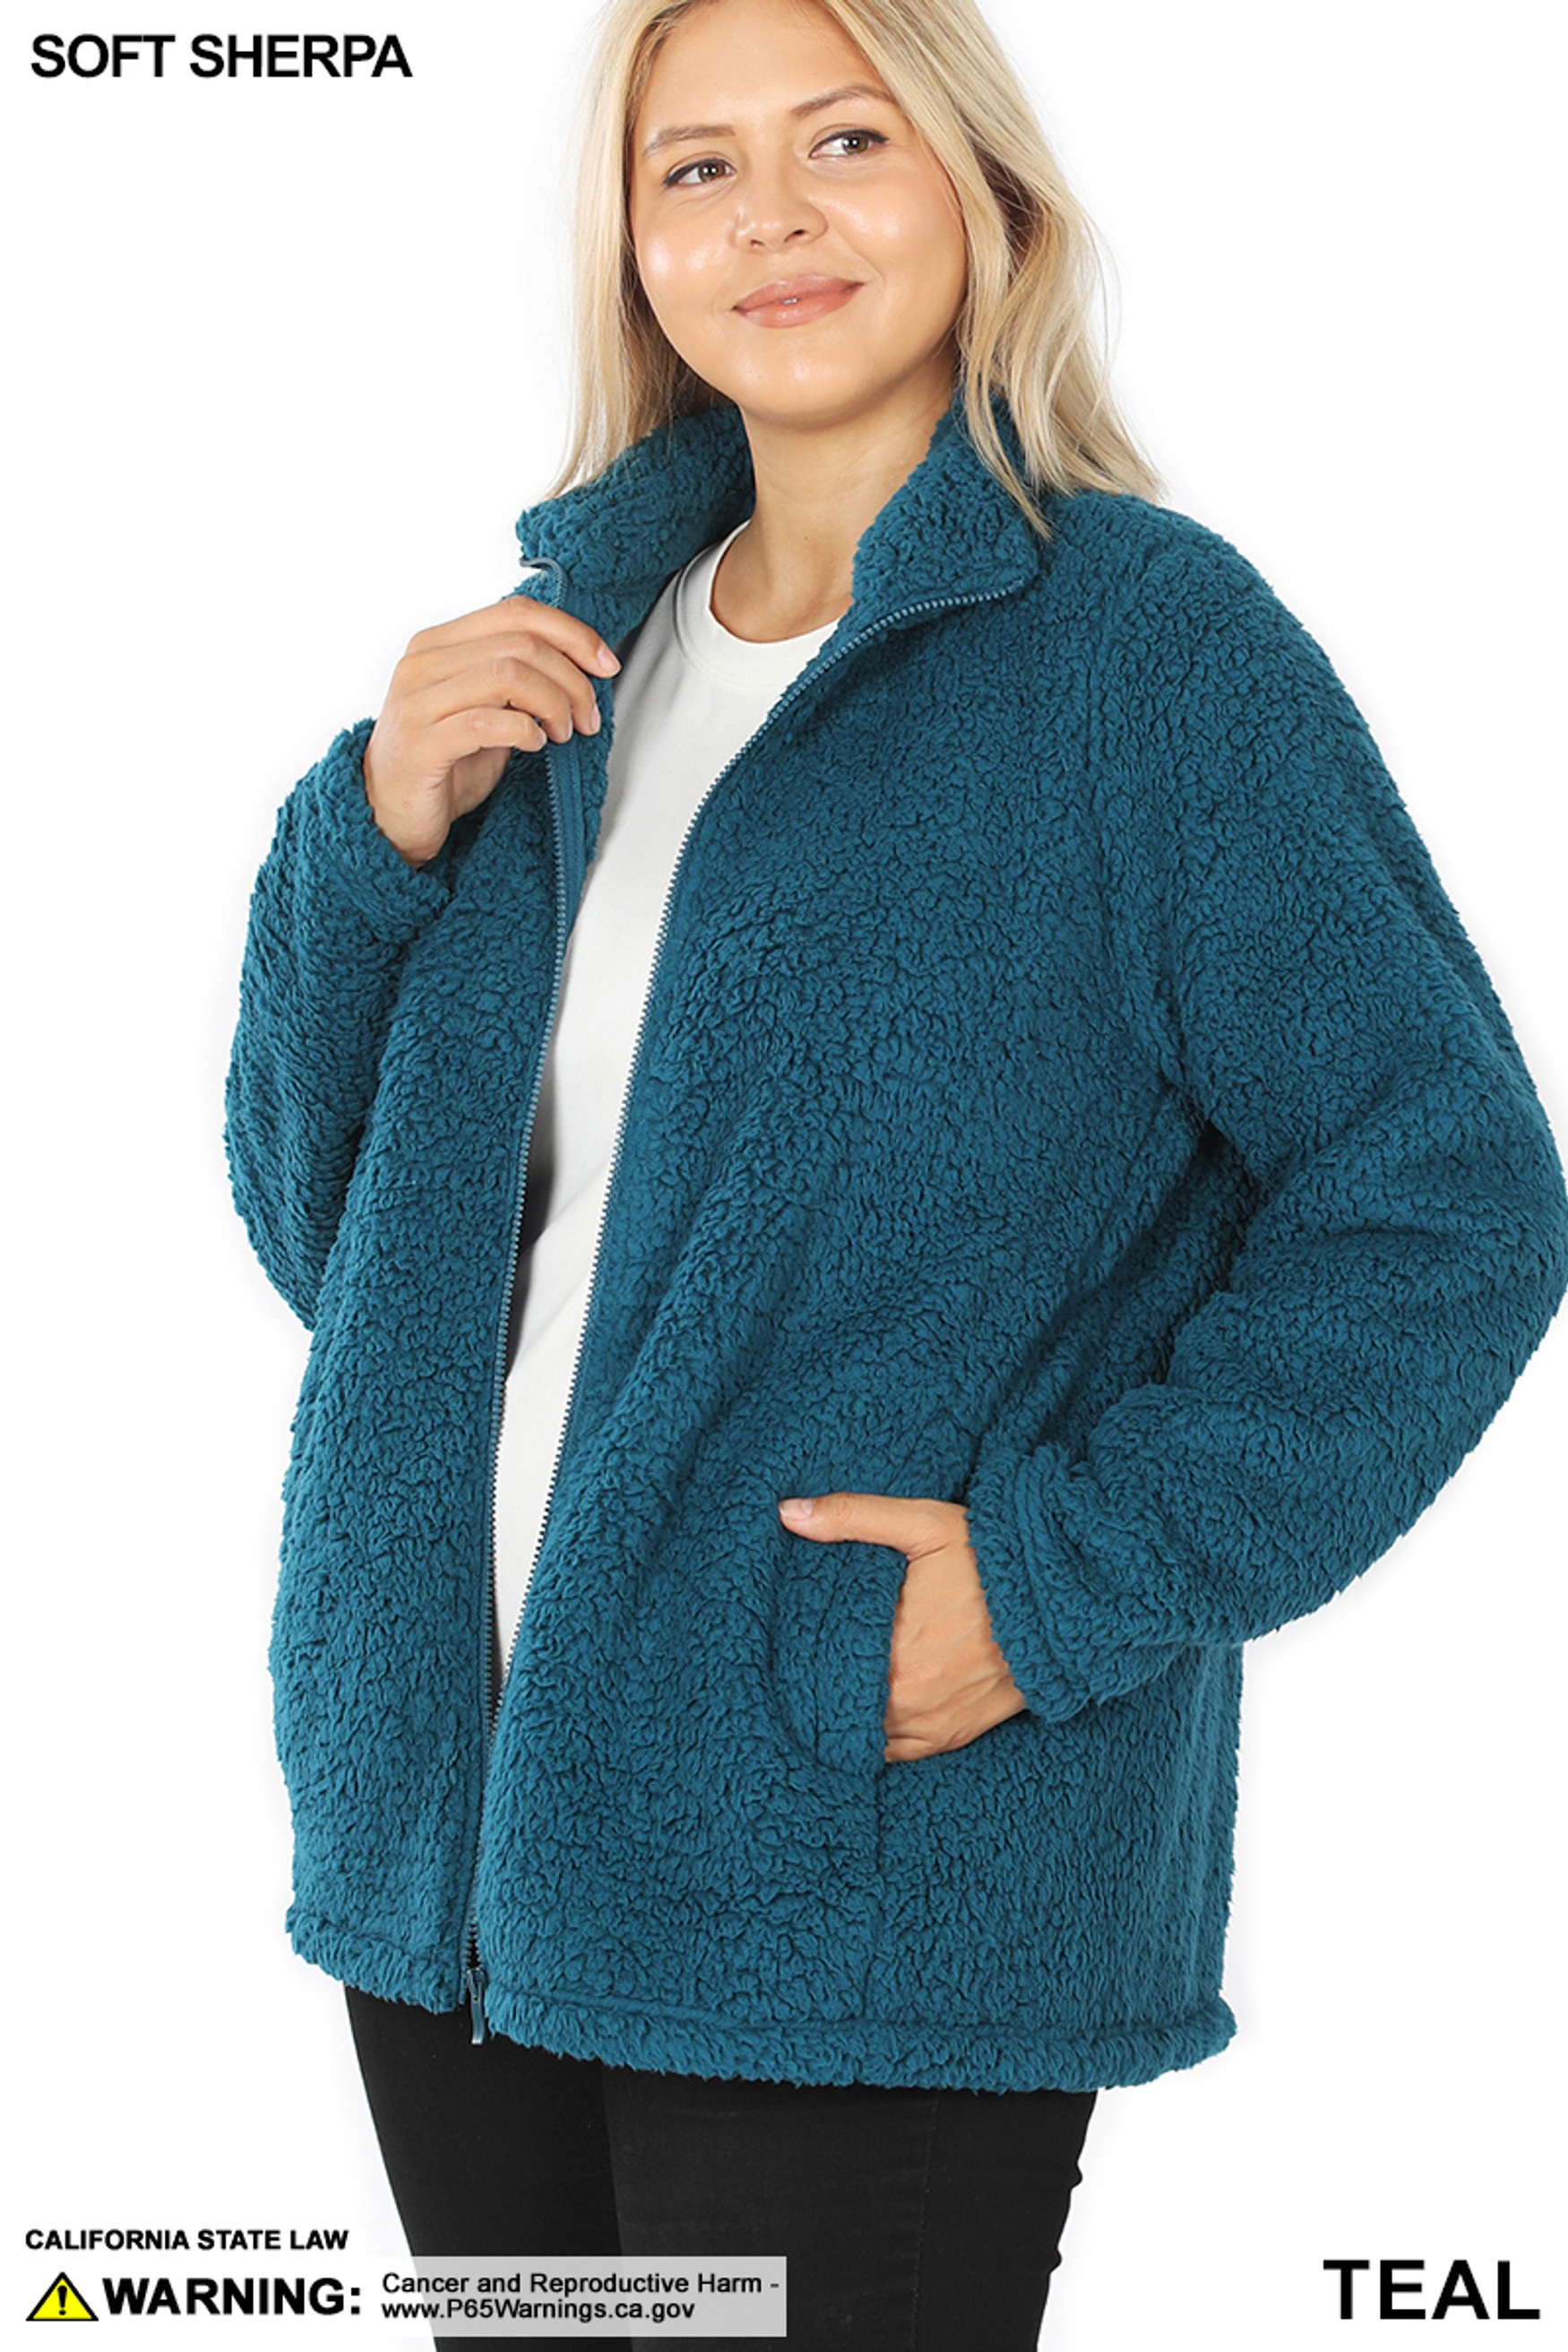 45 degree unzipped image of Teal Sherpa Zip Up Plus Size Jacket with Side Pockets